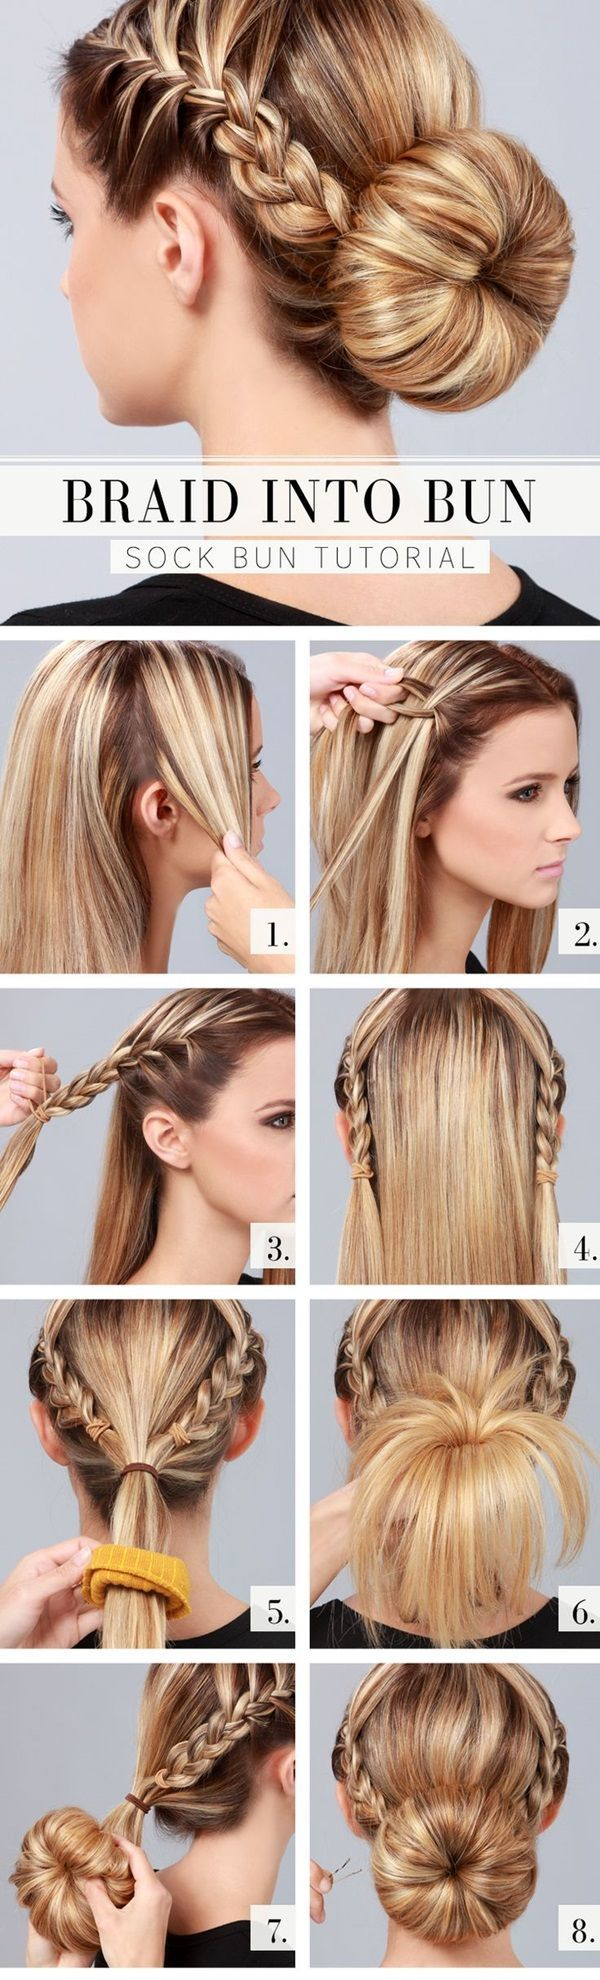 50 Simple Five Minute Hairstyles for Office Women: DIY | hair ...